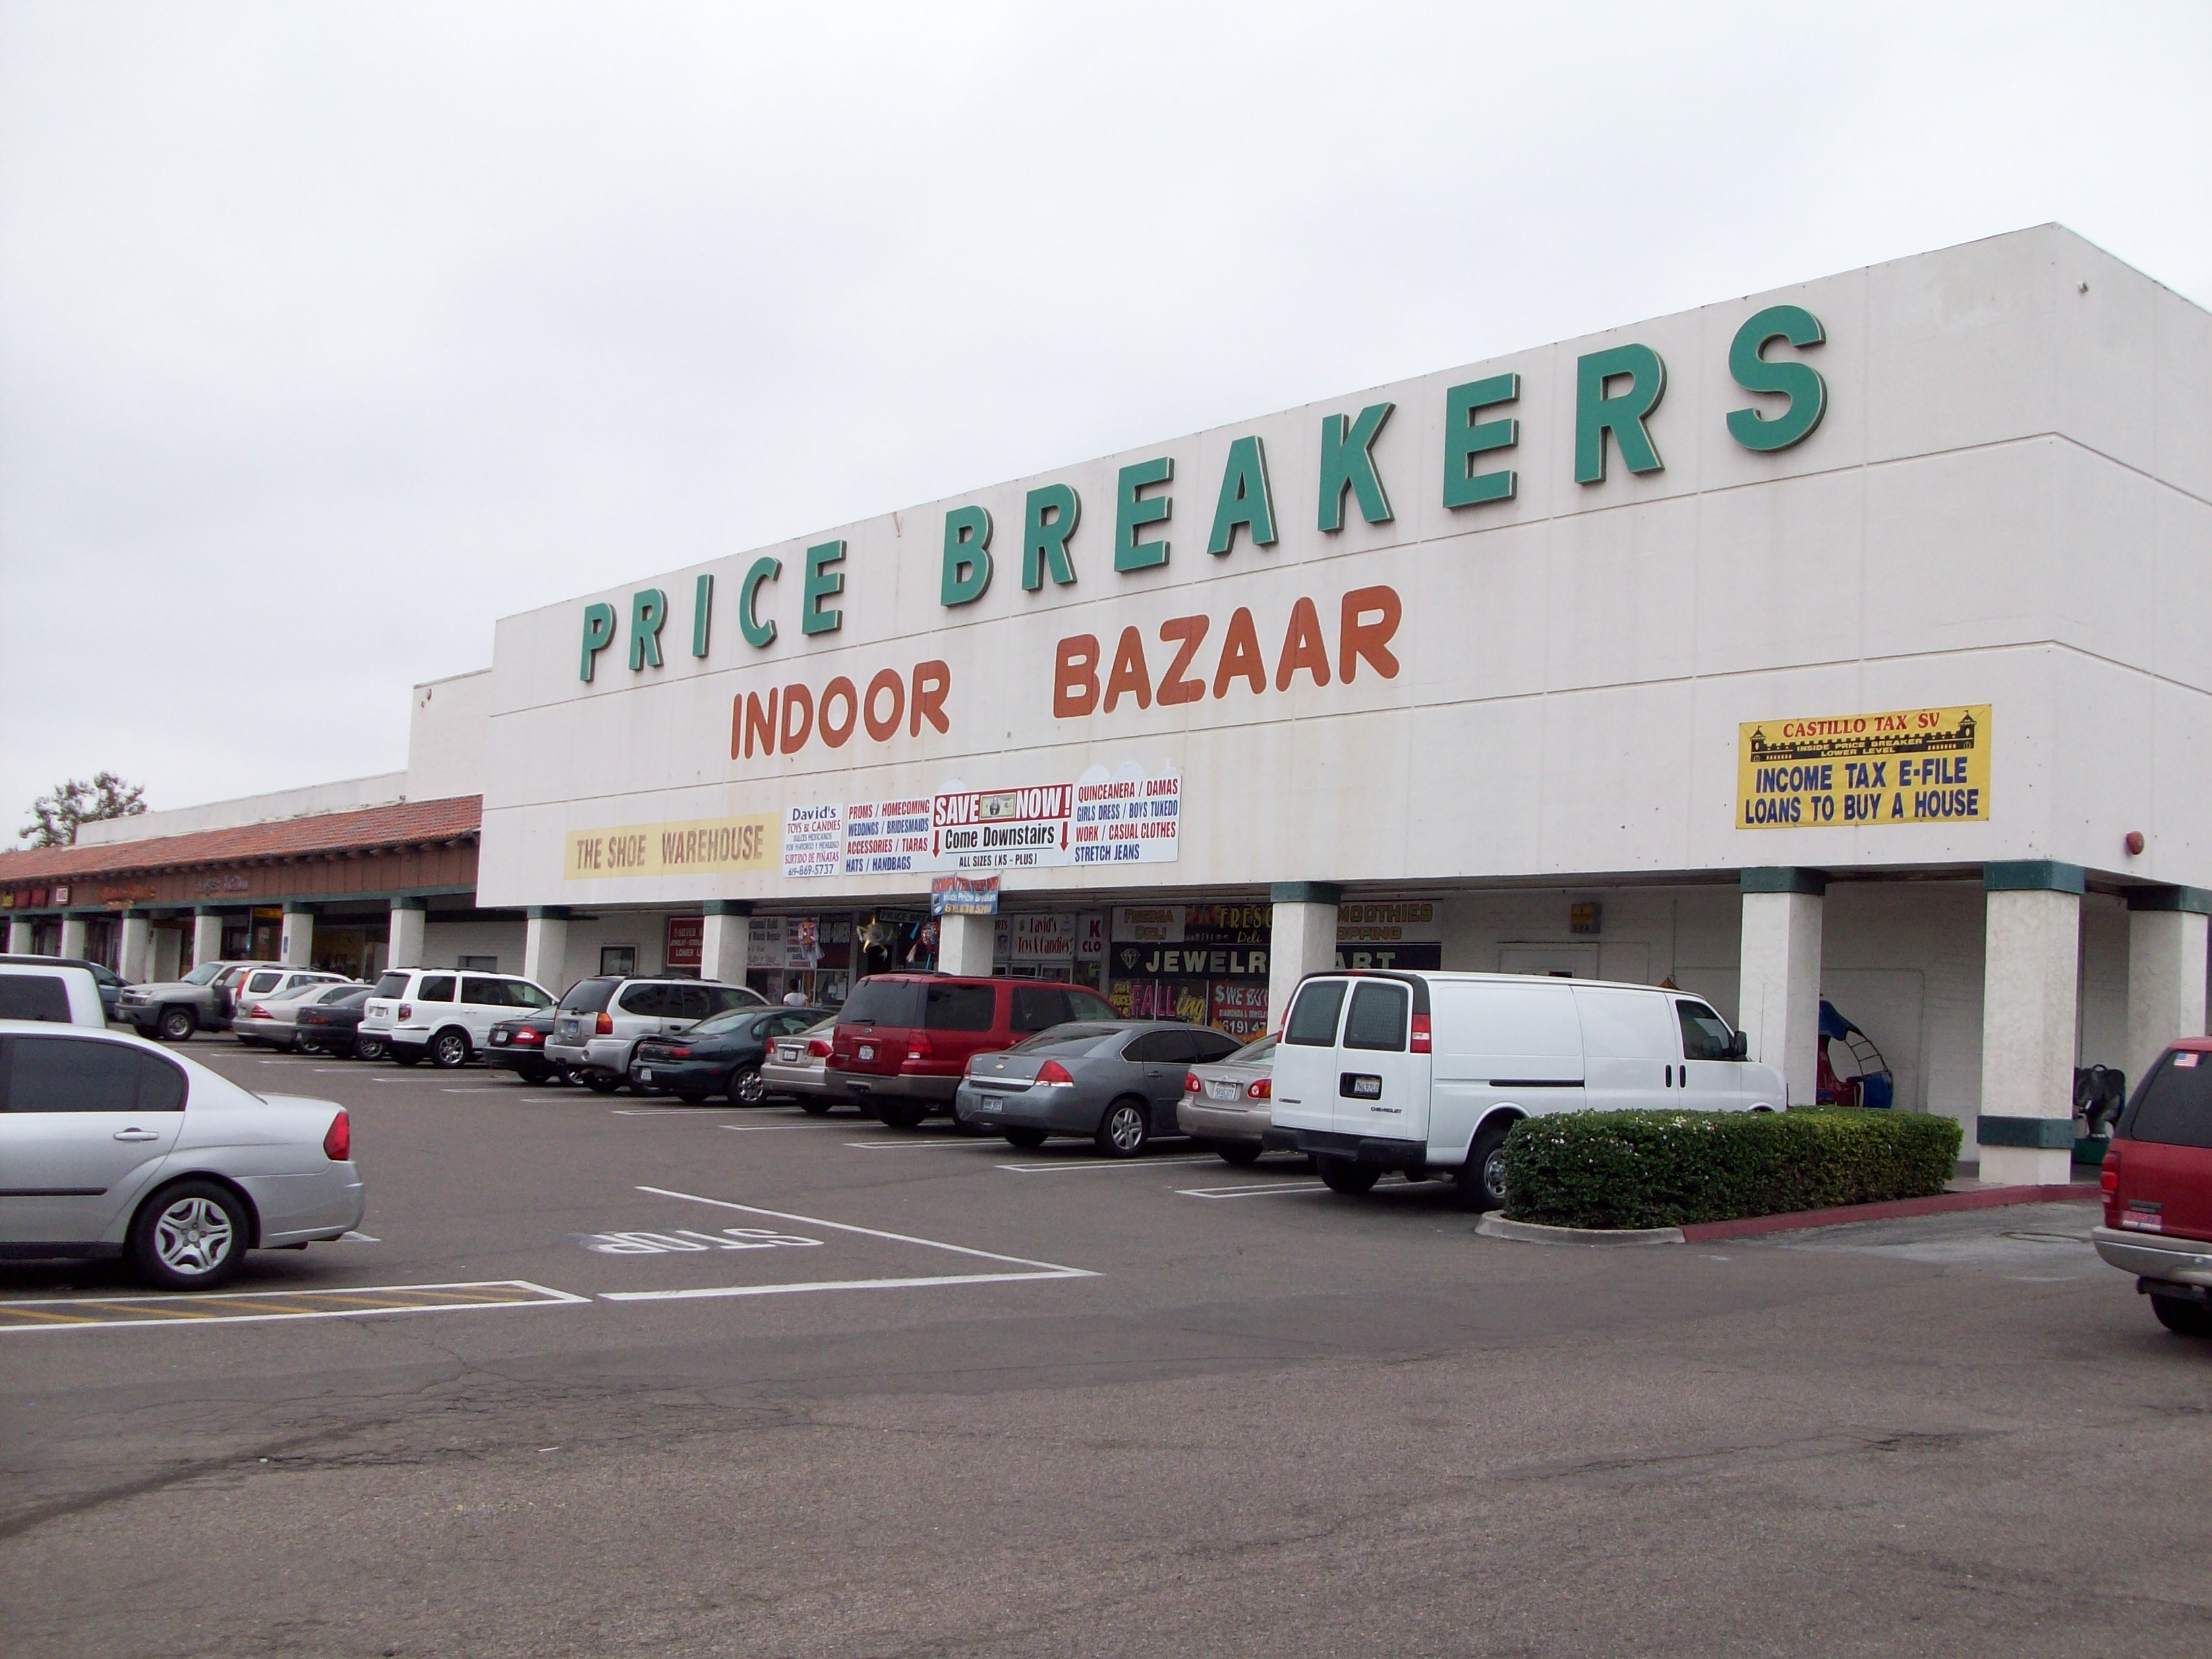 South Bay Plaza Price Breakers 005